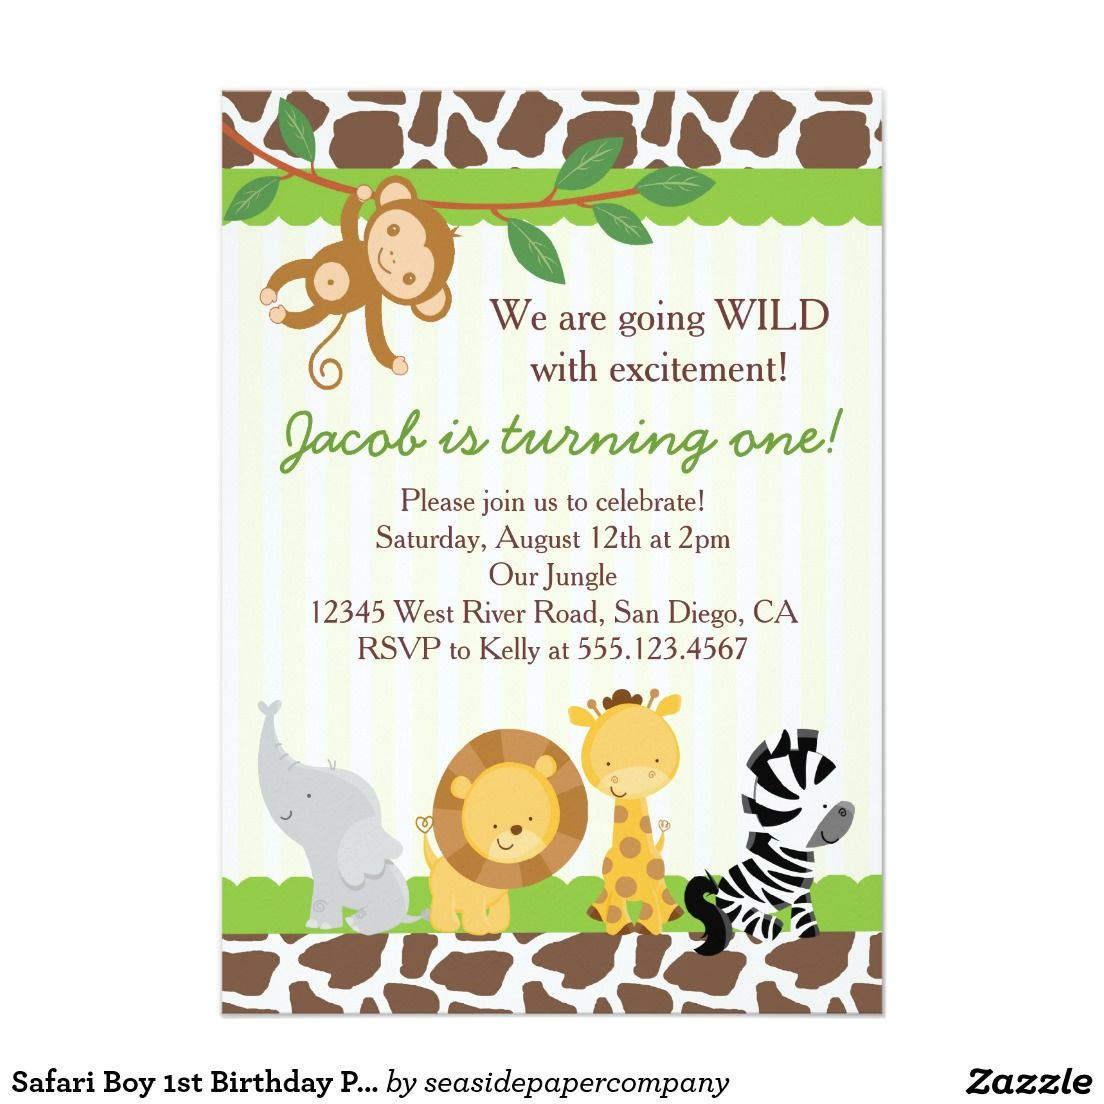 Safari Boy 1st Birthday Party Invitation Mummu Pinterest Baby